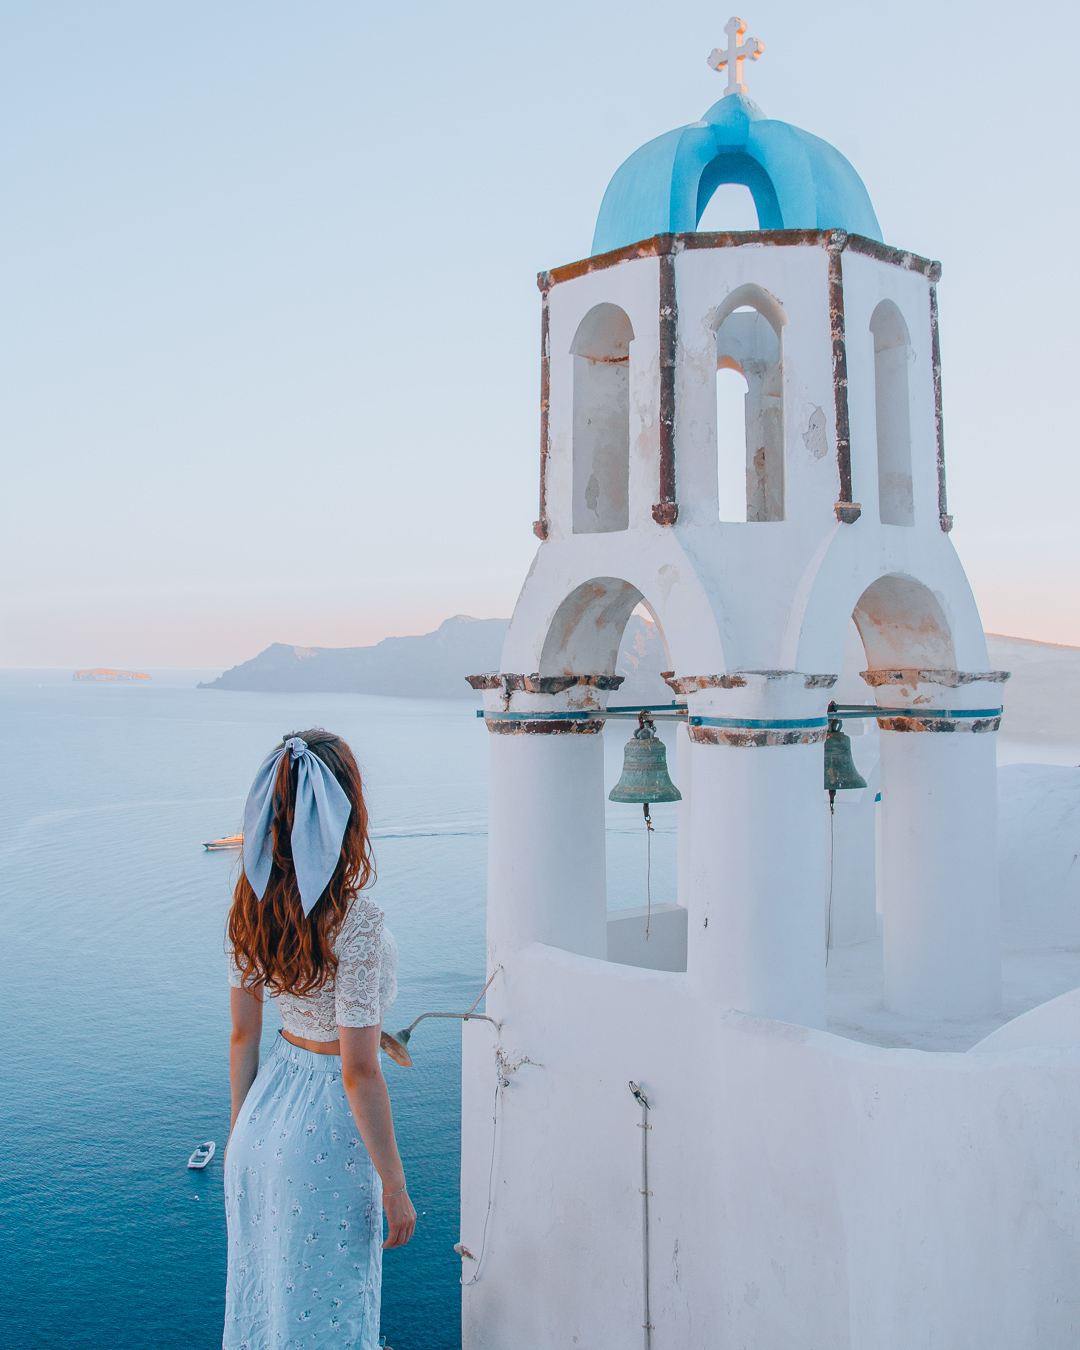 Girl next to a bell tower in Santorini